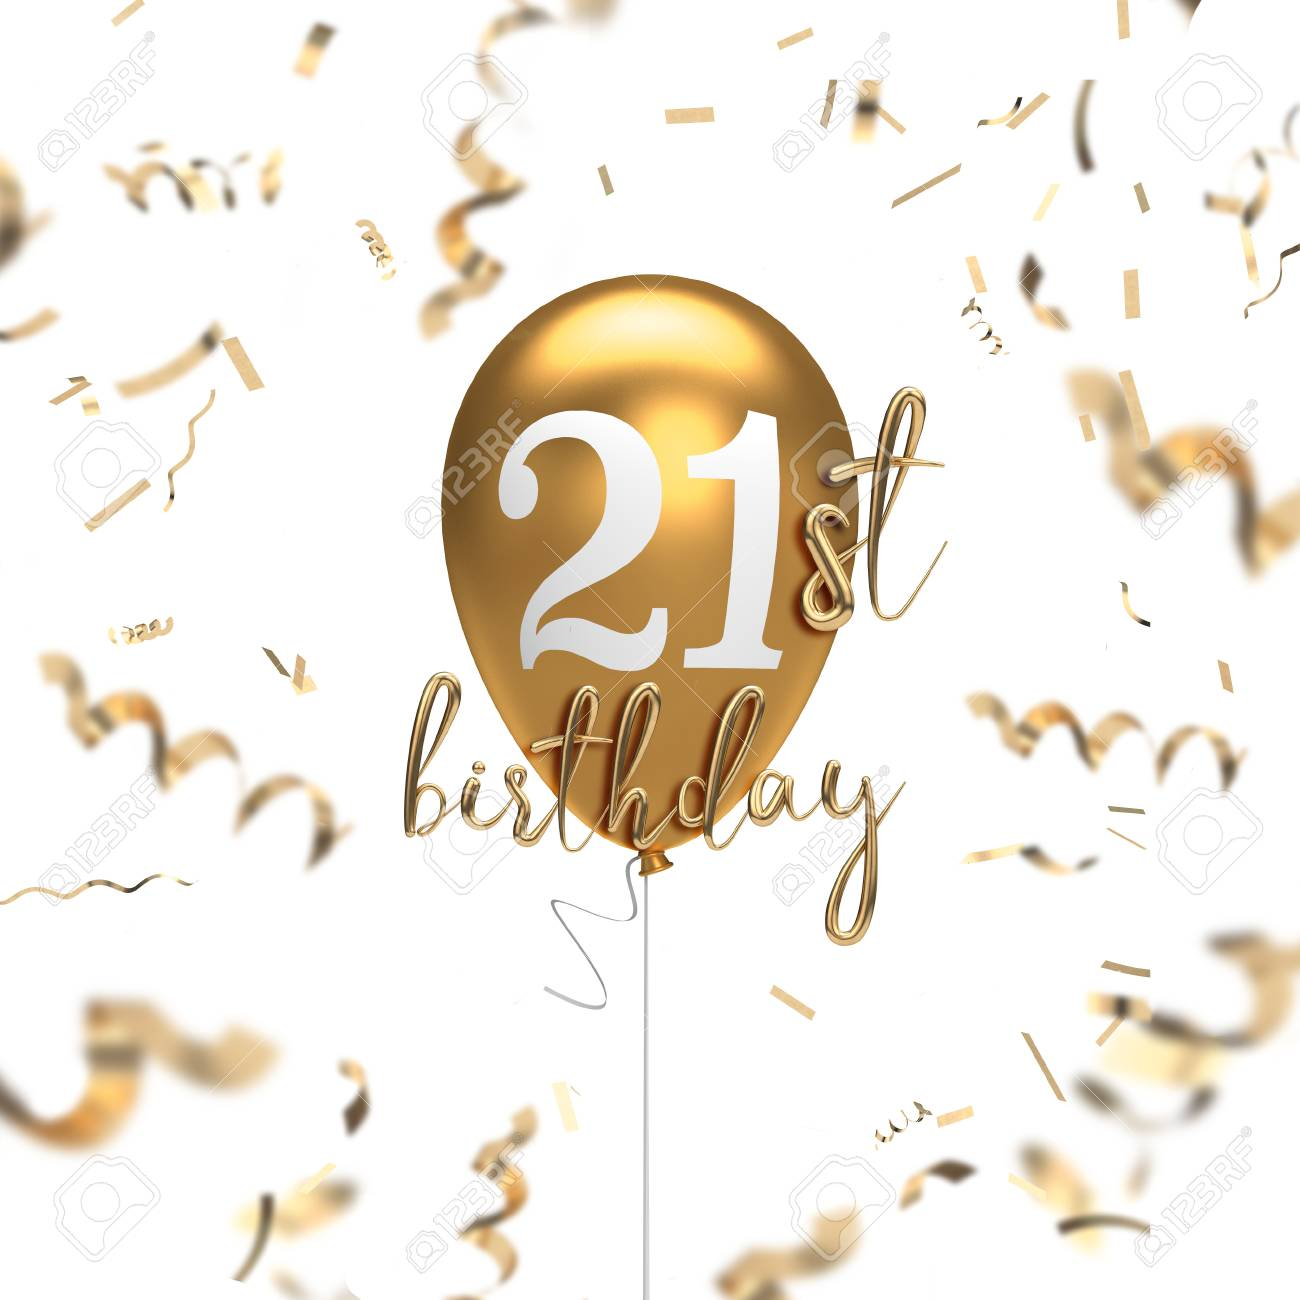 Happy 21st Birthday Images.Happy 21st Birthday Gold Balloon Greeting Background 3d Rendering